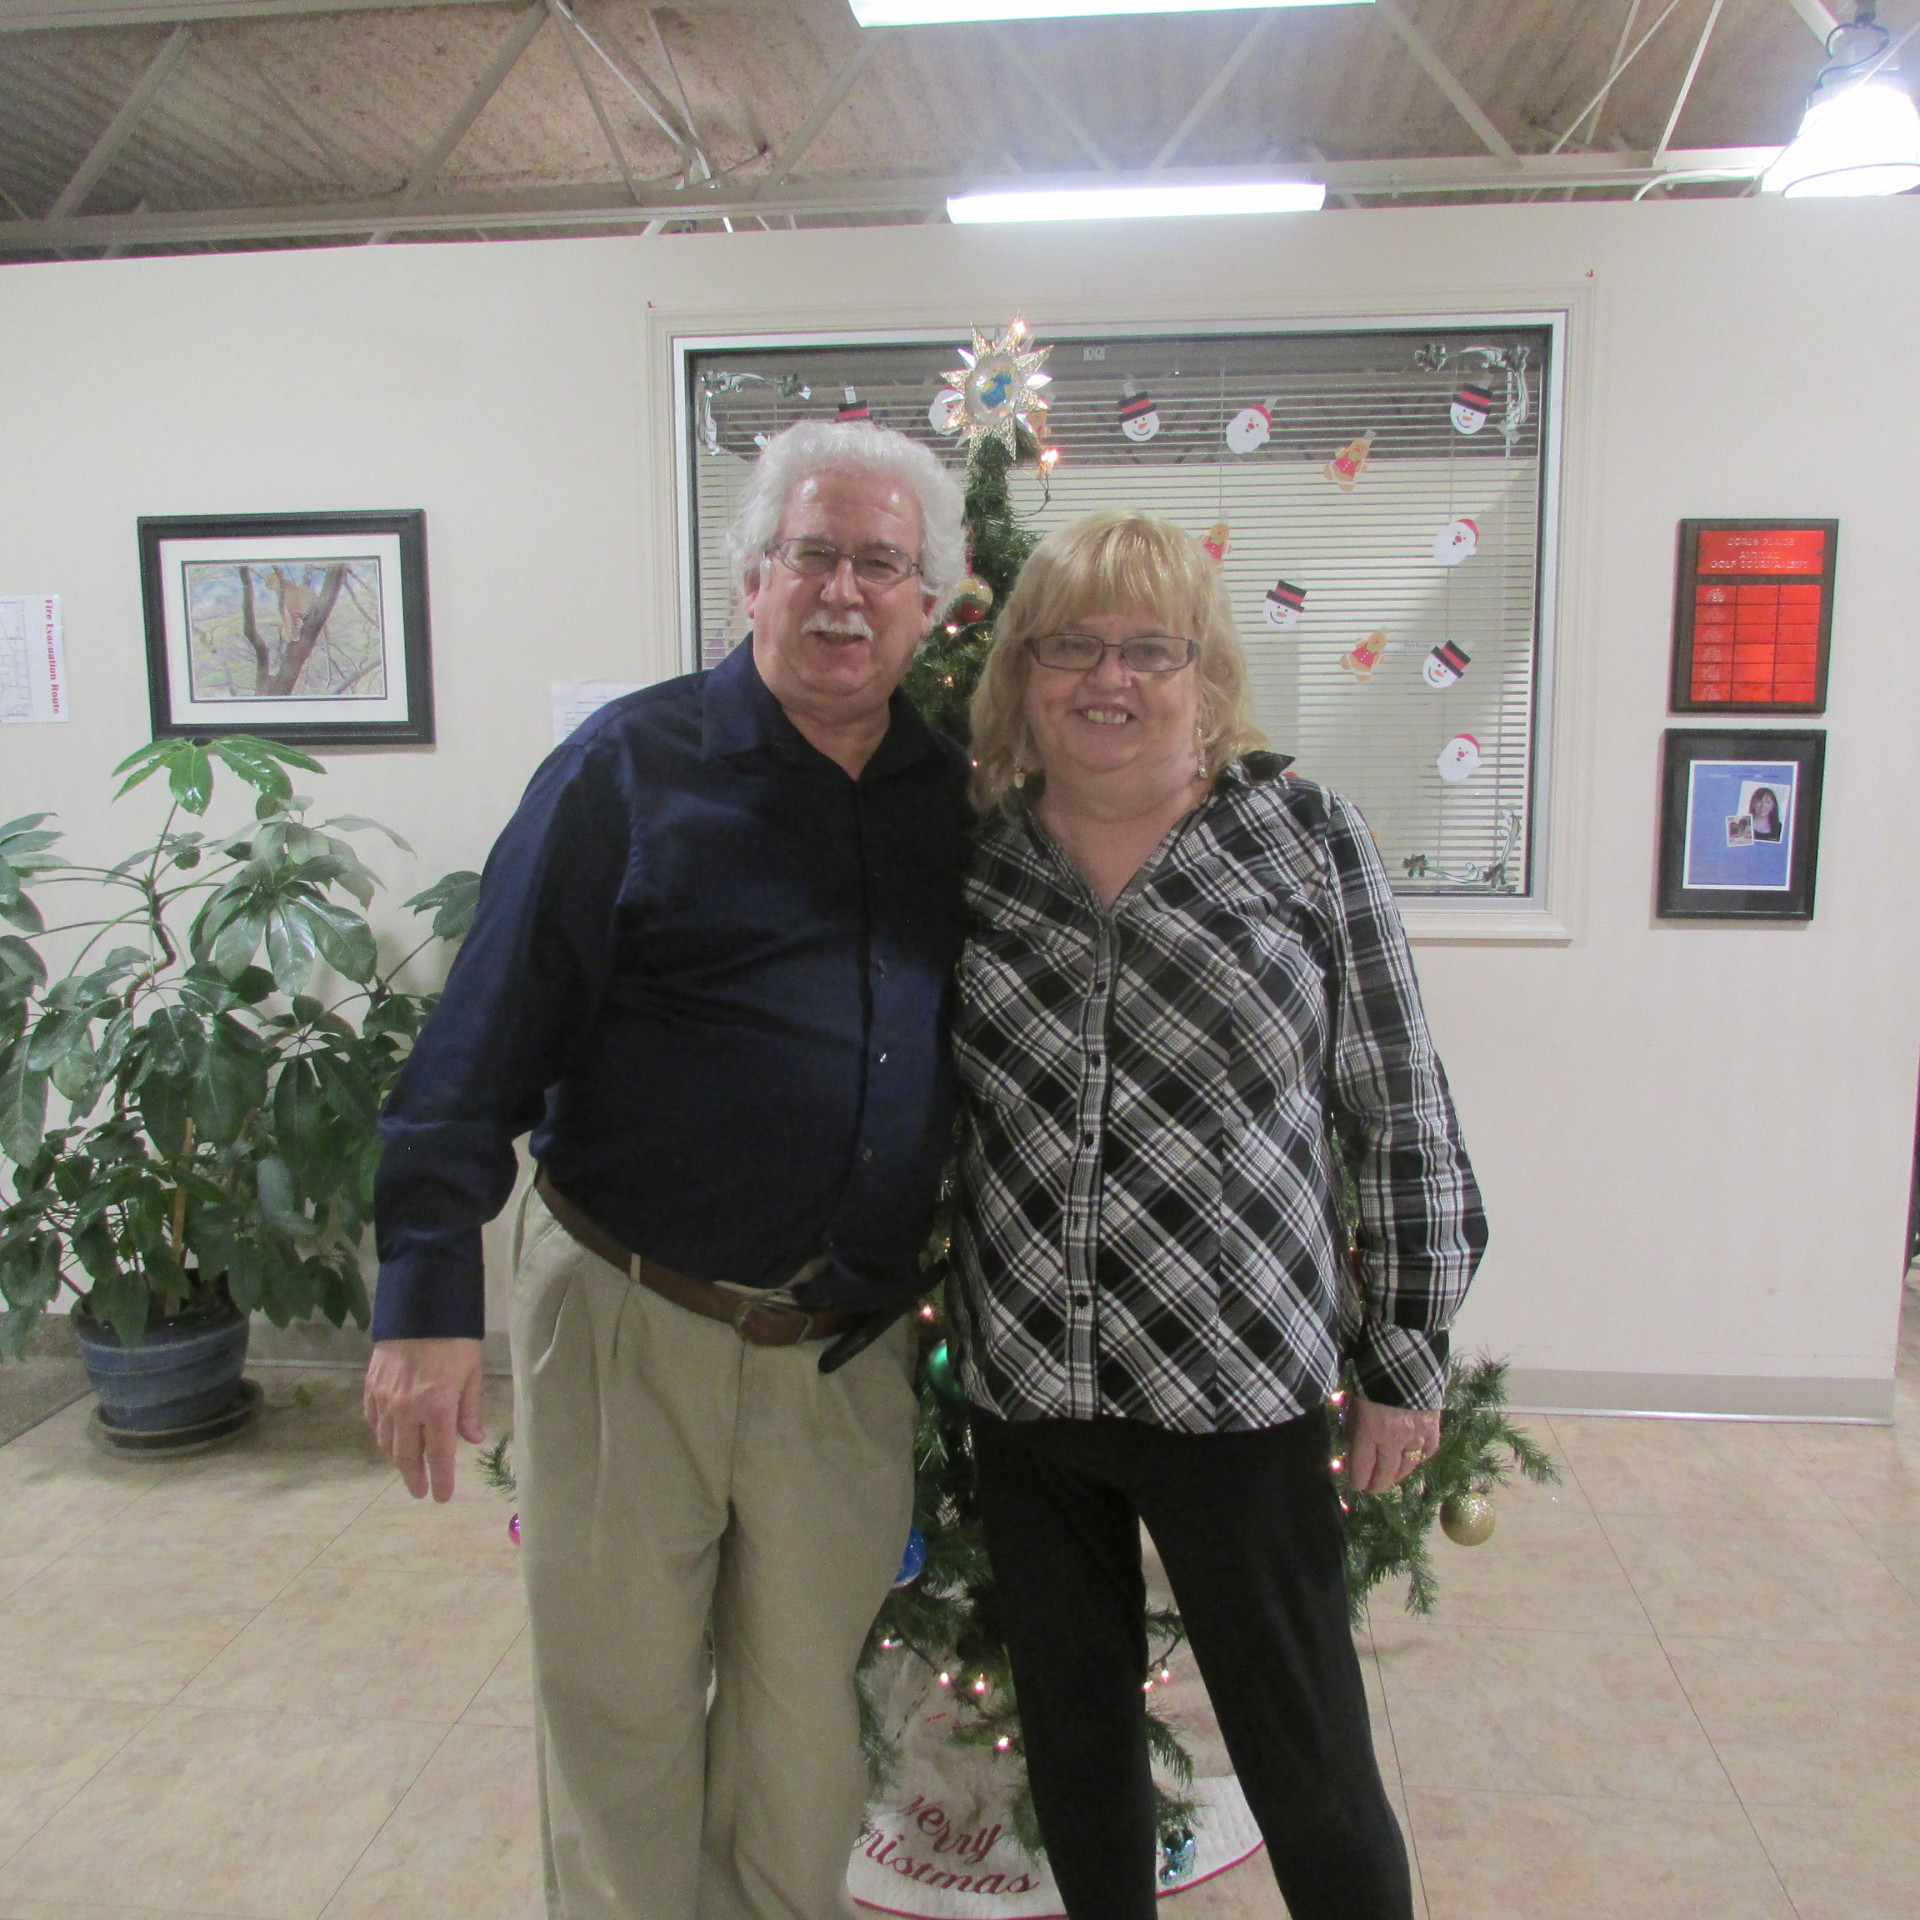 Co-founders George & Therese Gwilliam